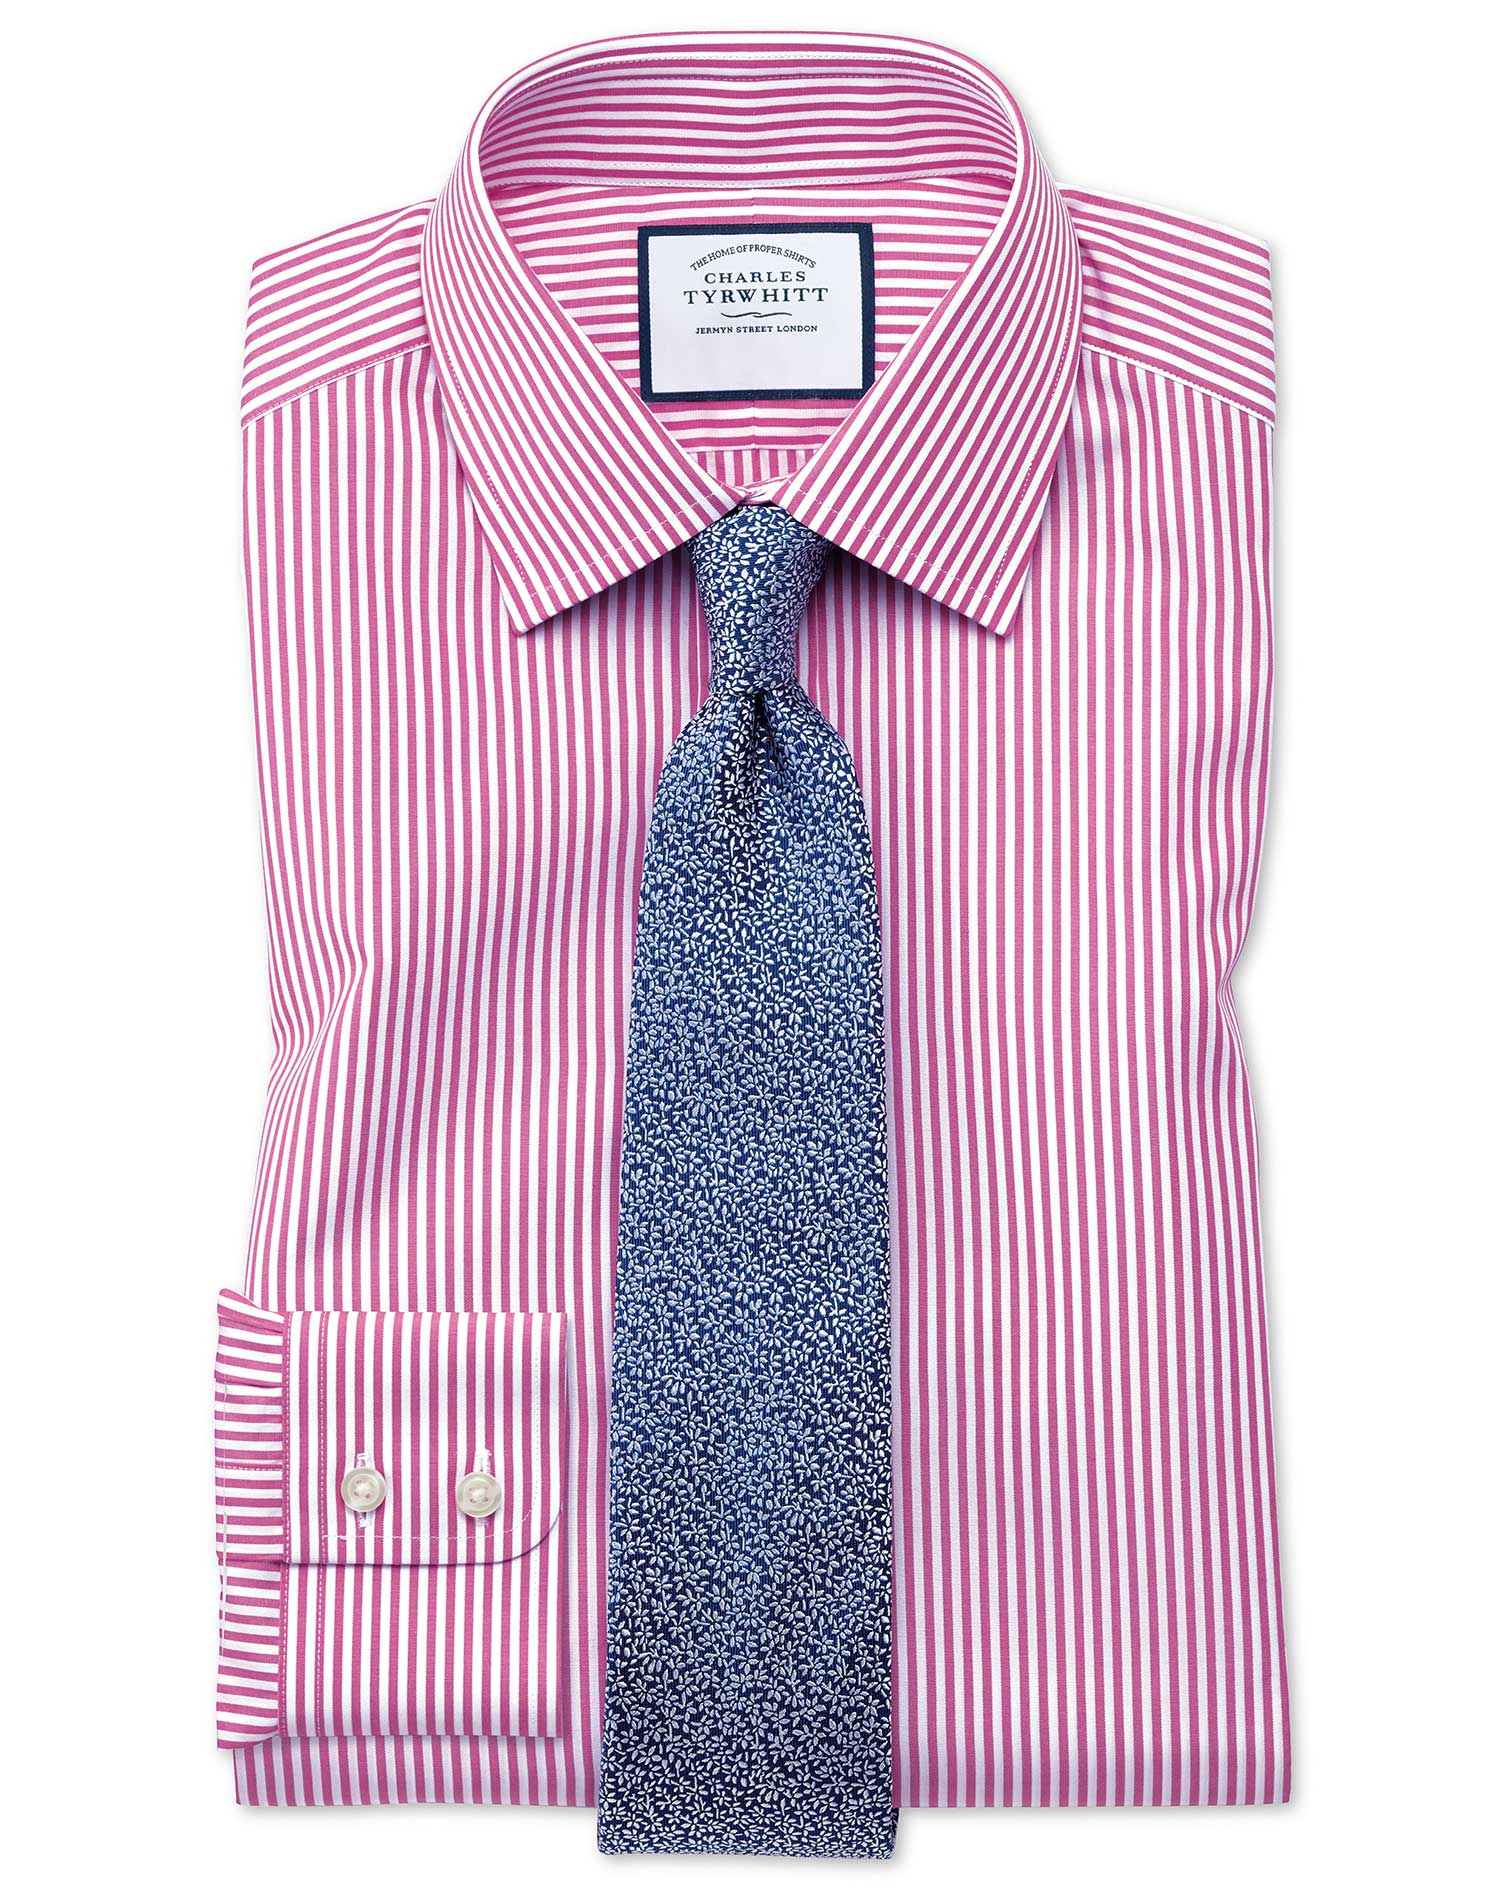 Slim Fit Bengal Stripe Pink Cotton Formal Shirt Single Cuff Size 16.5/35 by Charles Tyrwhitt